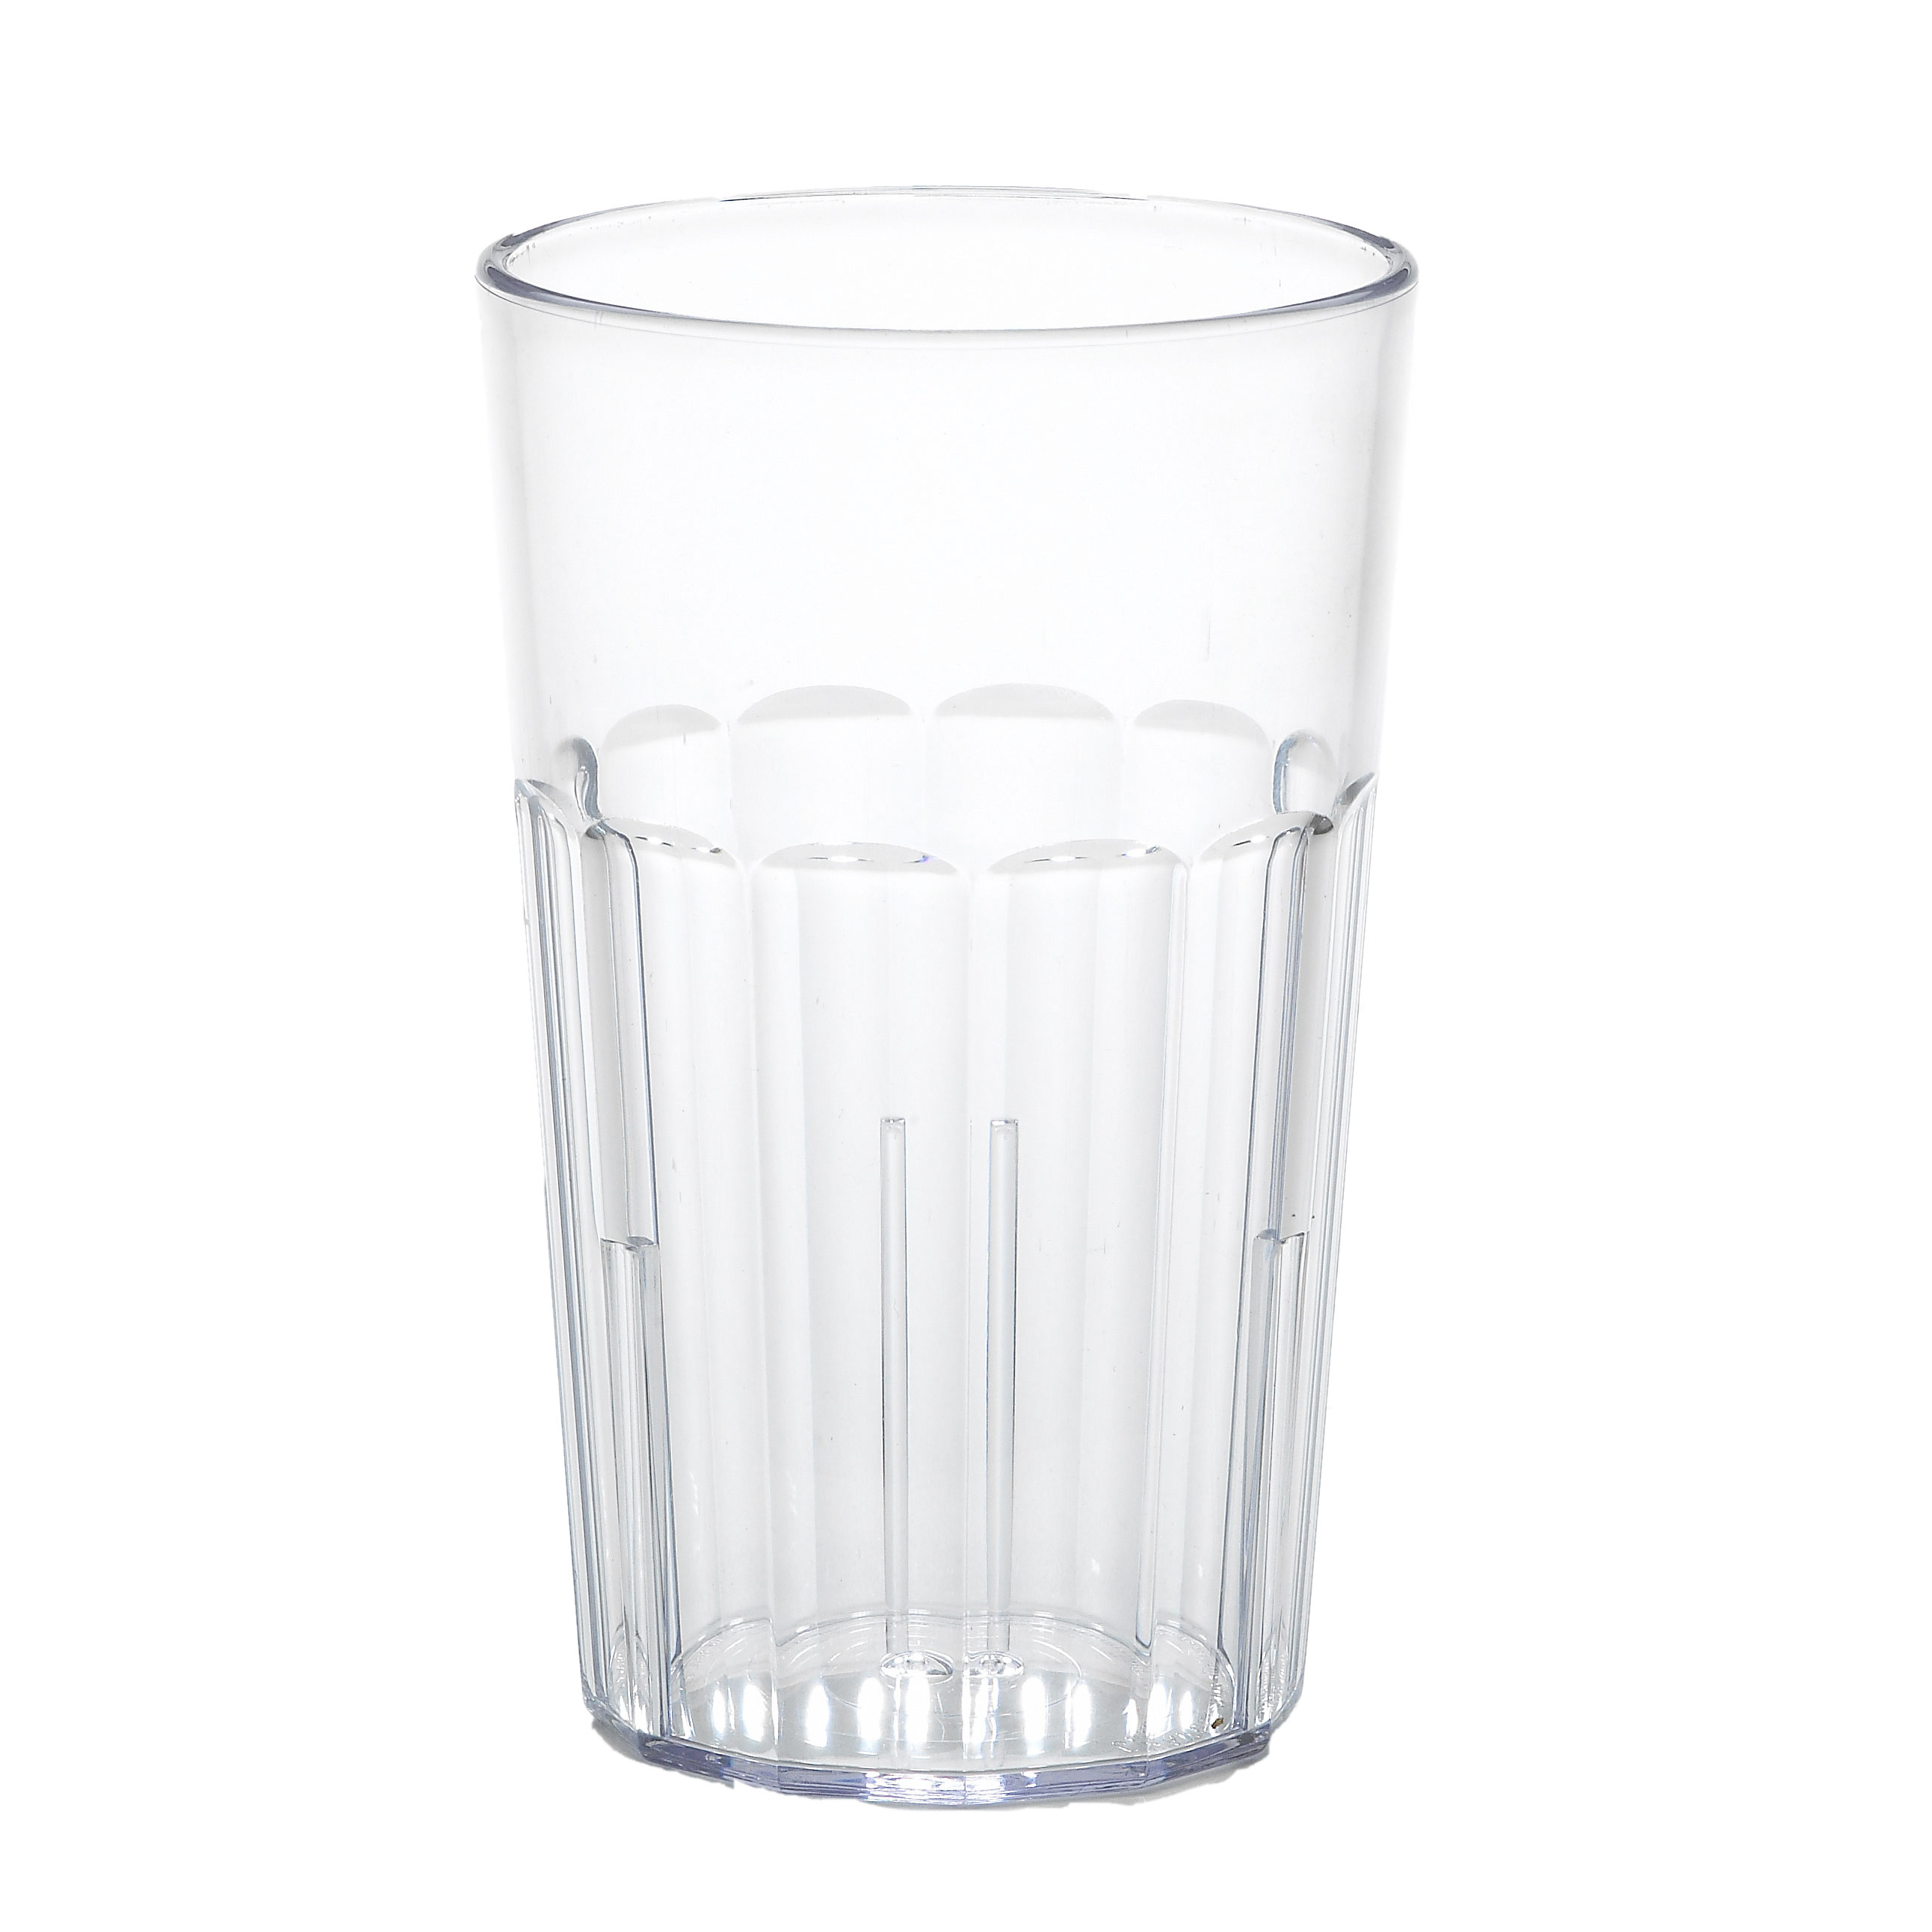 Cambro NT14152 serving/drinking glasses